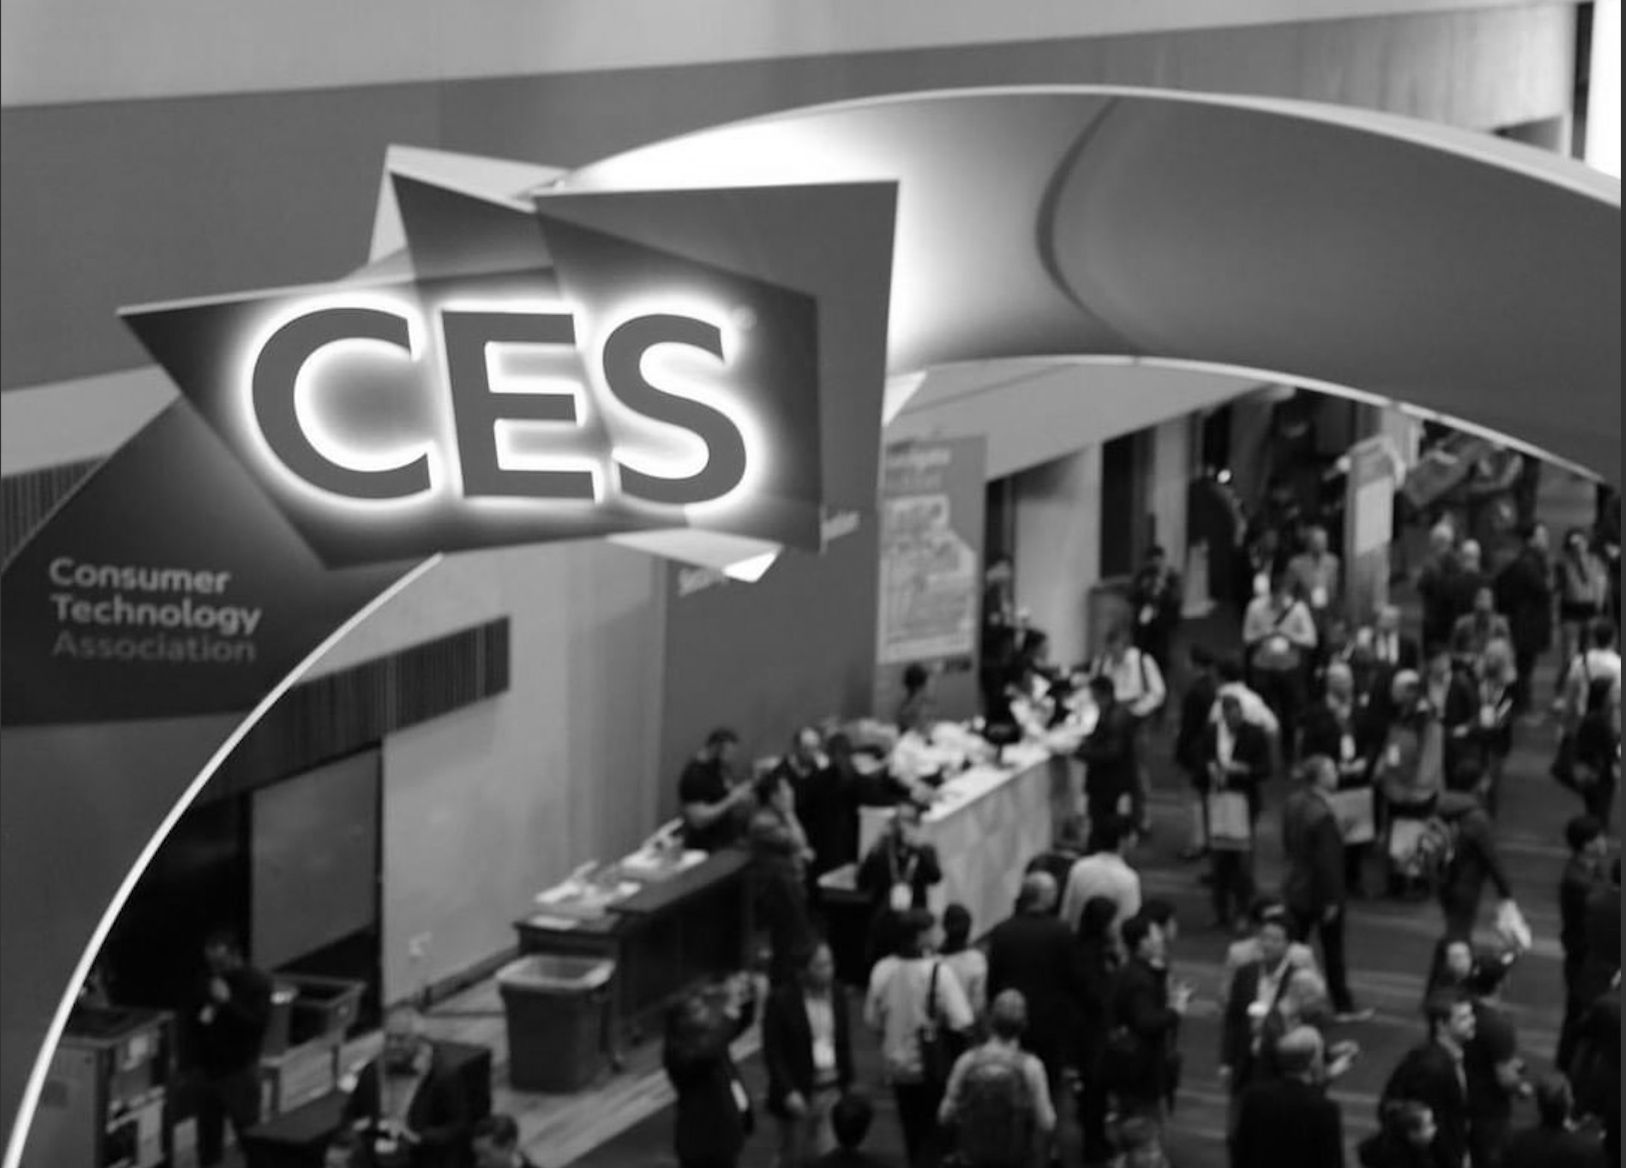 Tech firms gathered at CES 2019 to show their new products and gadgets - Credits: CES